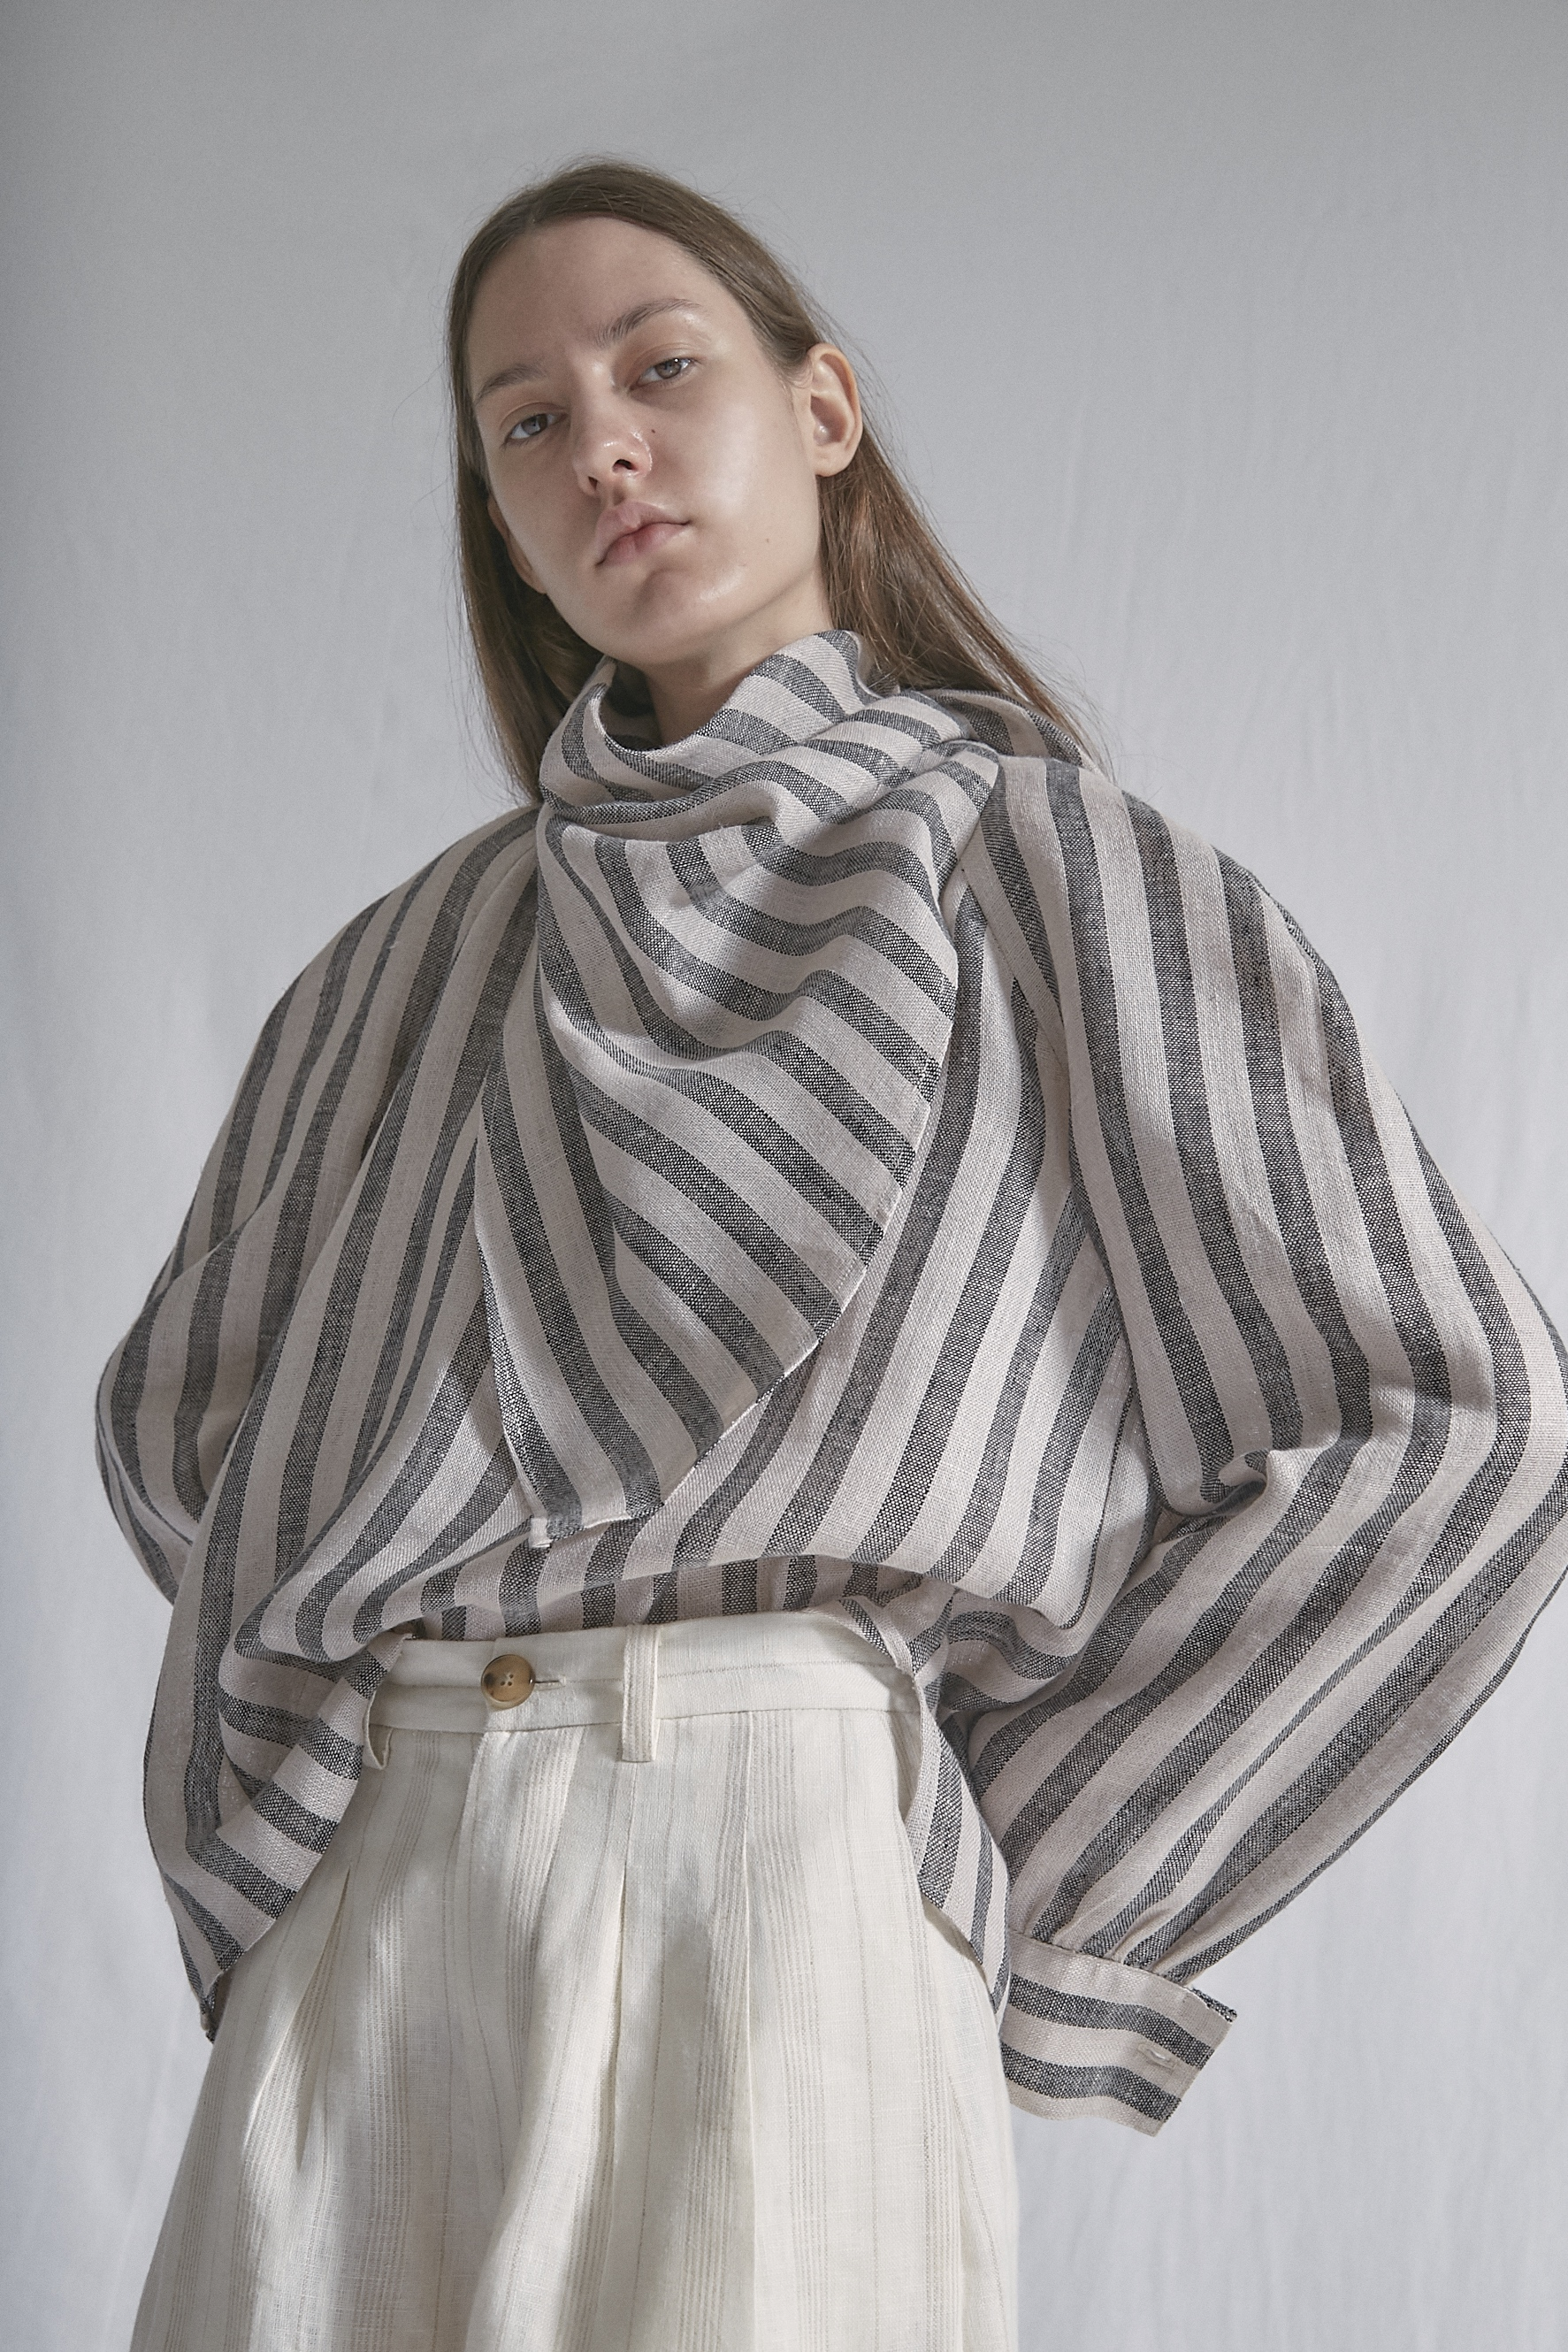 KLEE   scarf blouse in stripe linen and   TELLER   high—waisted shorts